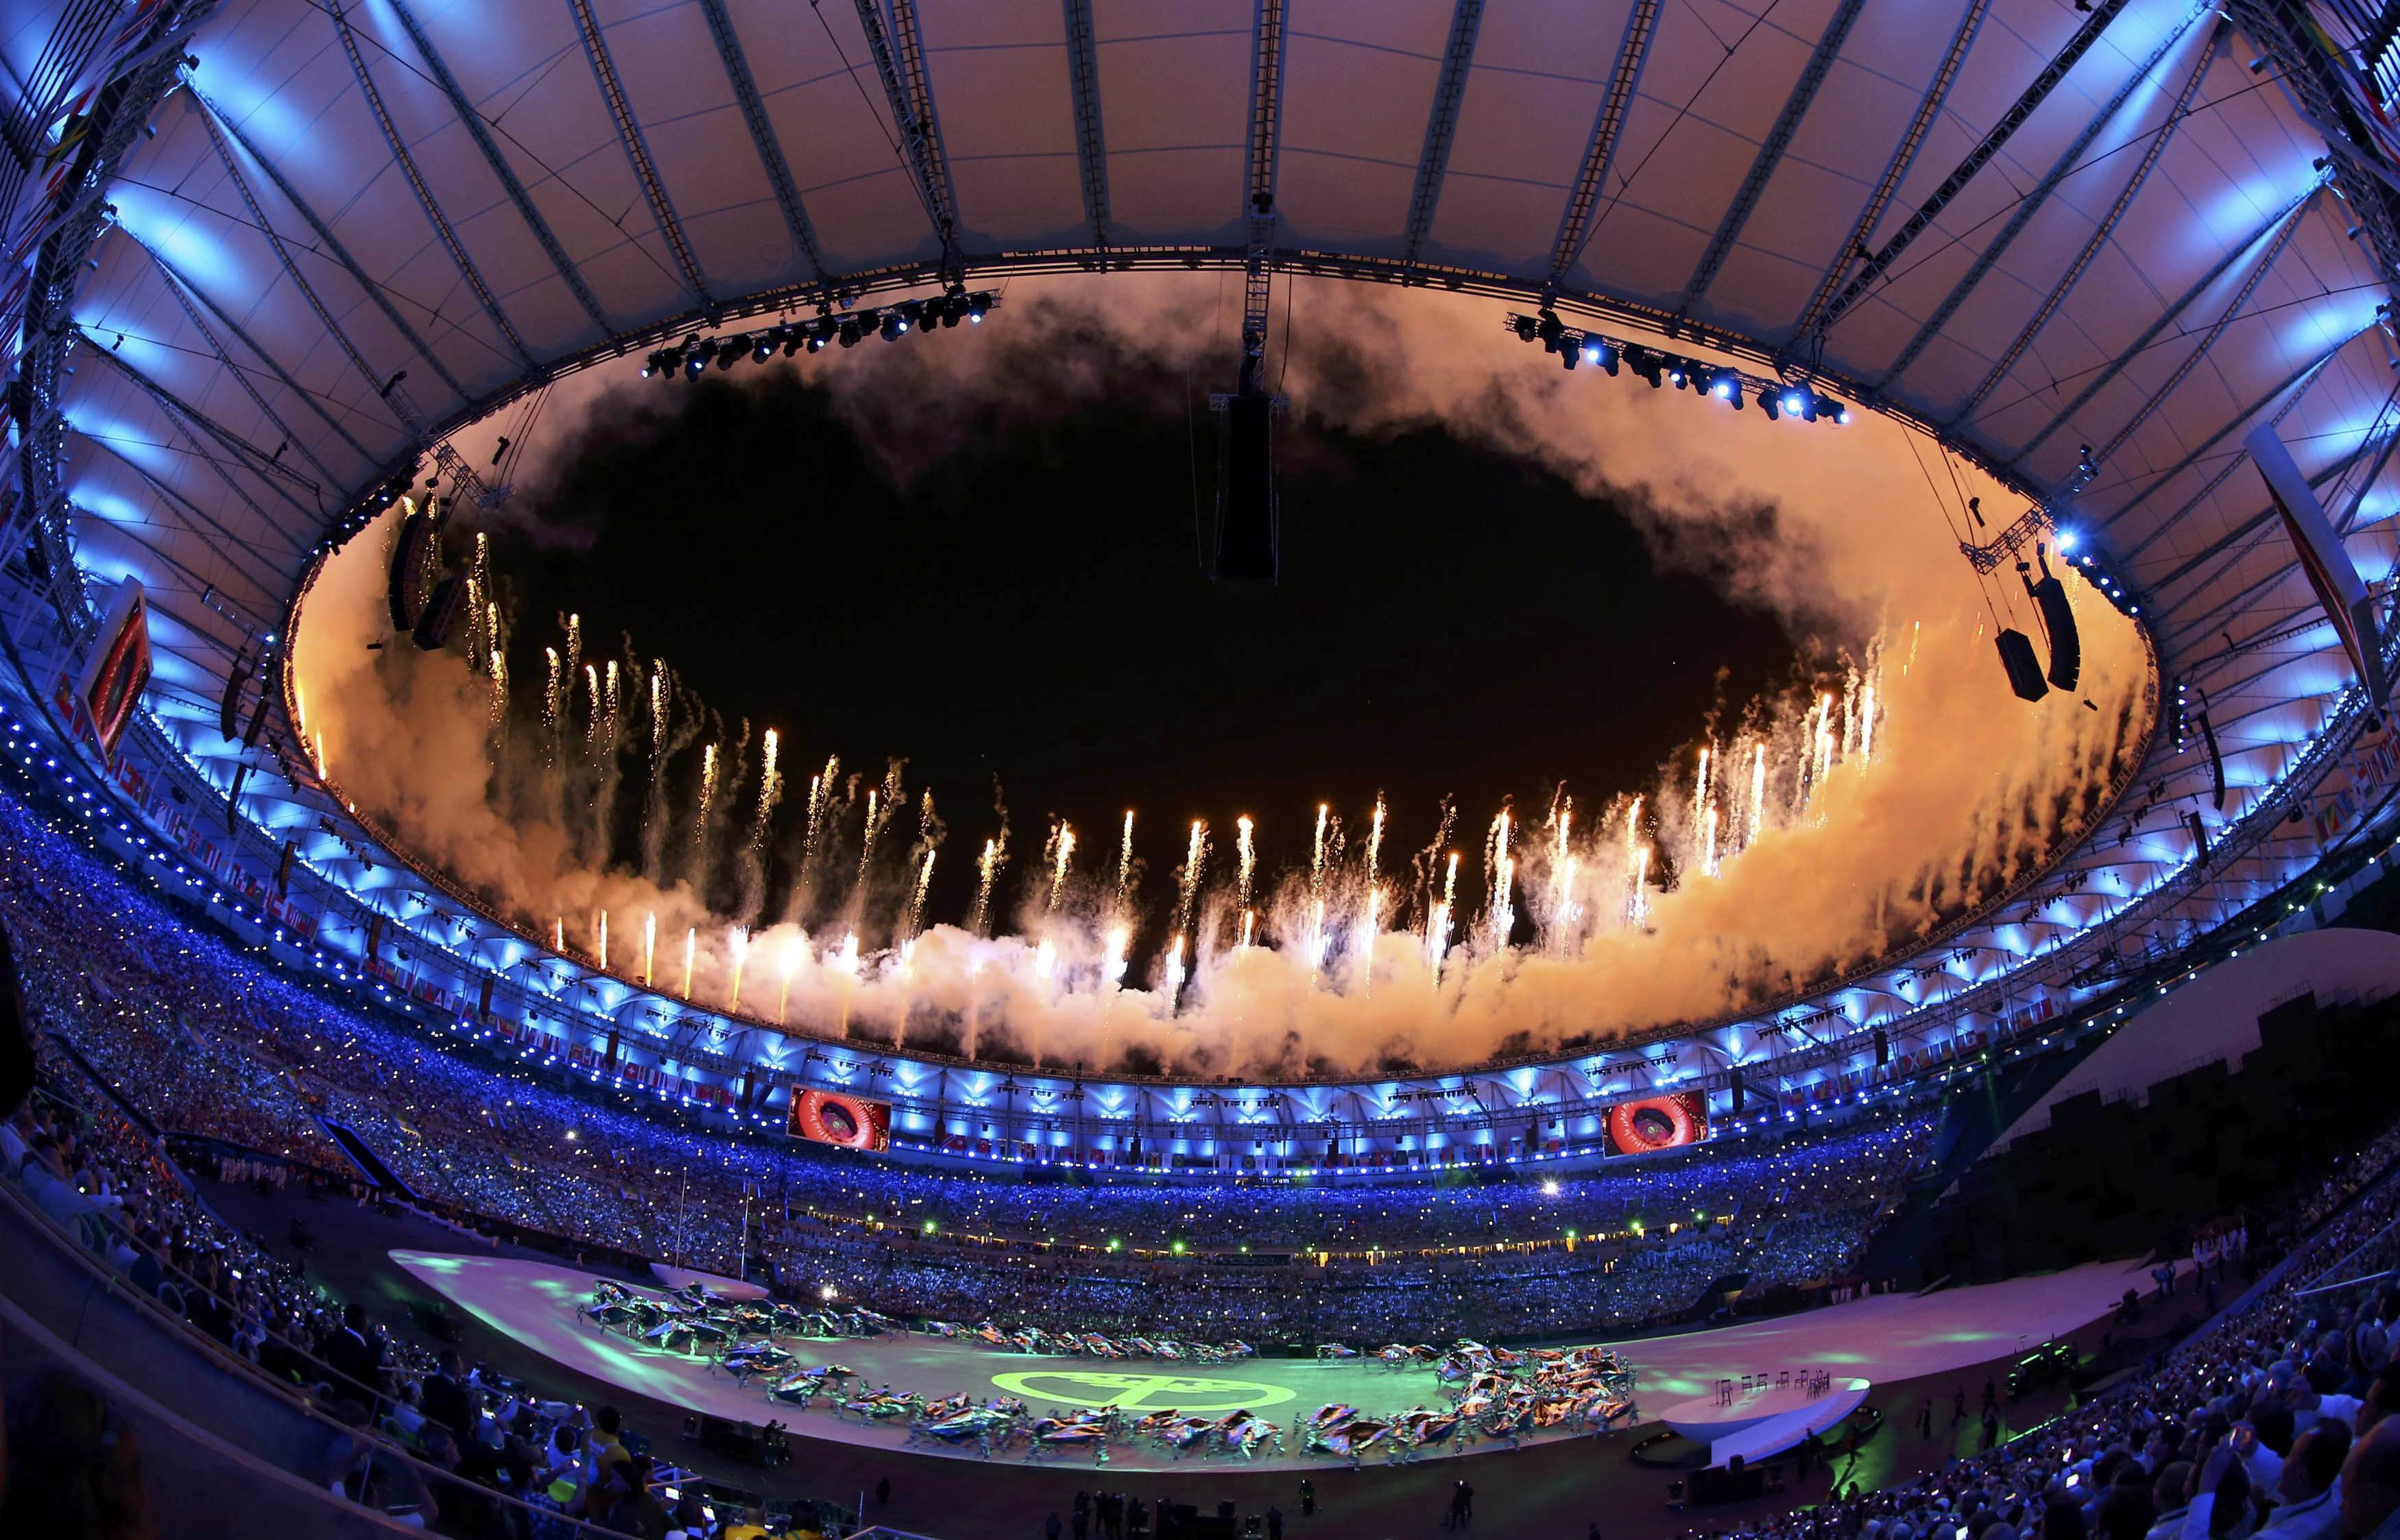 2016 Rio Olympics - Opening ceremony - Maracana - Rio de Janeiro, Brazil - 05/08/2016. Fireworks explode during the opening ceremony. Picture taken with a fisheye lens REUTERS/Ivan Alvarado FOR EDITORIAL USE ONLY. NOT FOR SALE FOR MARKETING OR ADVERTISING CAMPAIGNS